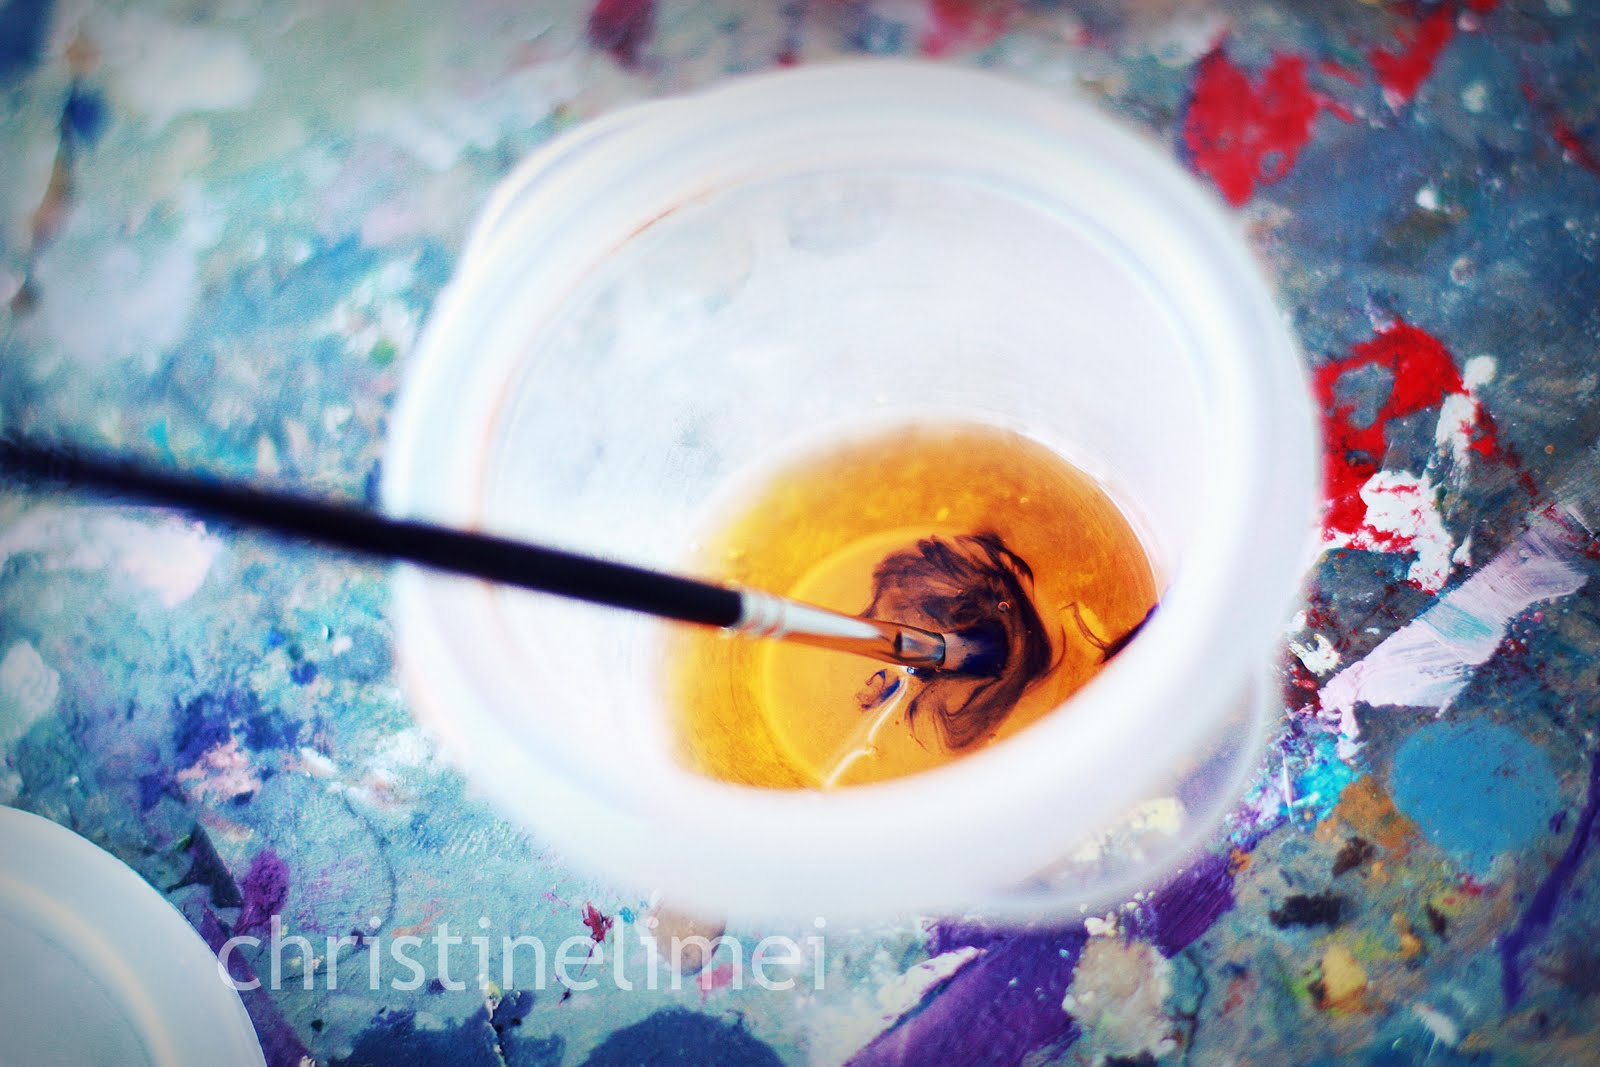 How to clean oil paint brush